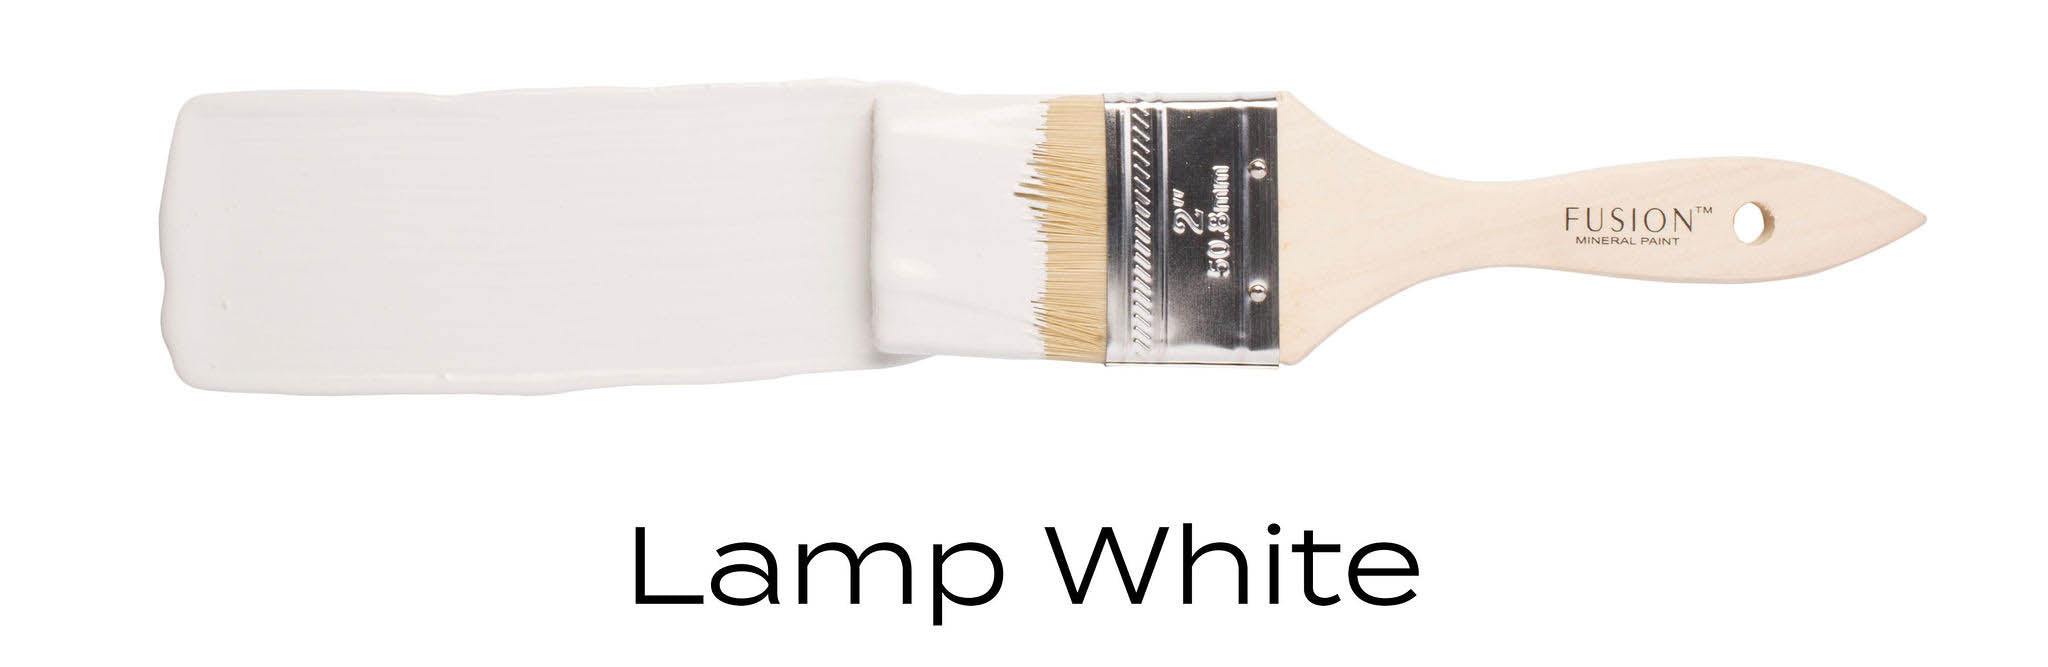 Lamp White Fusion Mineral Paint Furniture Paint Colour Example, No Prep or top coat needed, UK Stockist